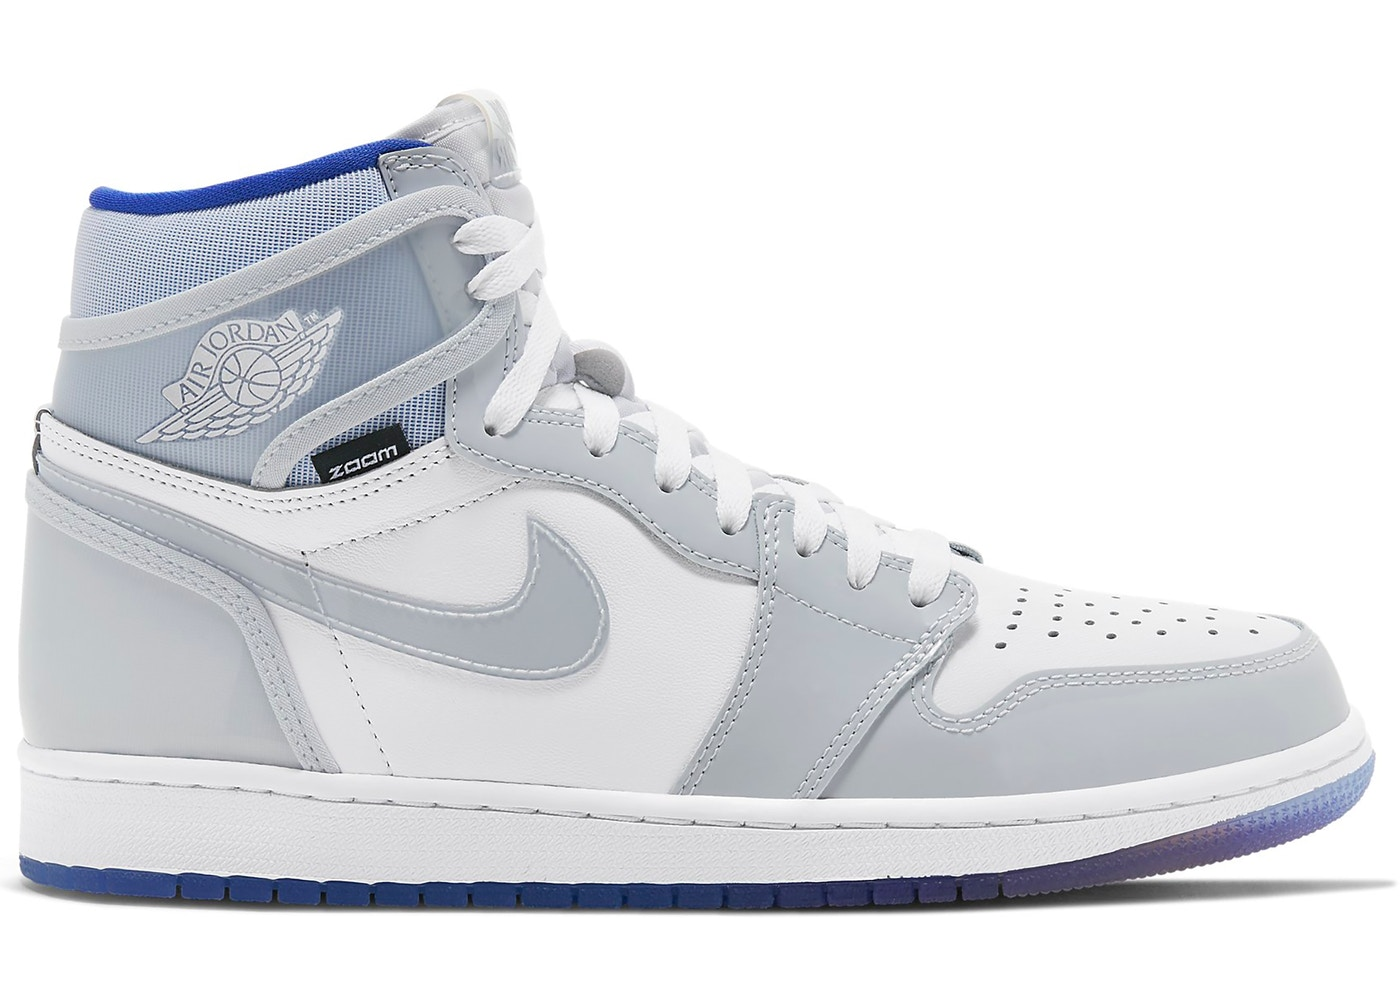 Jordan 1 Retro High Zoom White Racer Blue Ck6637 104